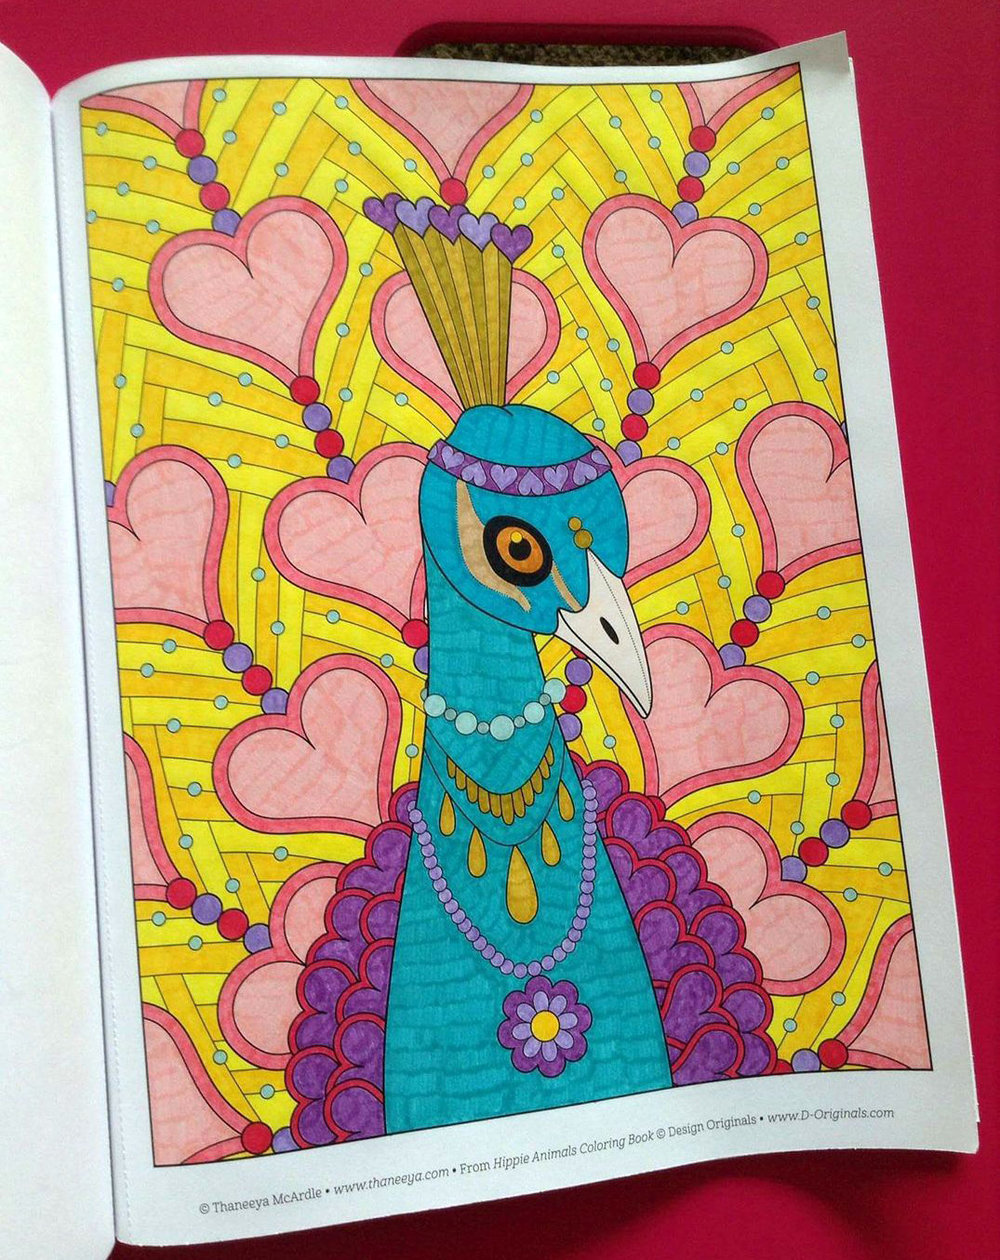 Peacock coloring page from Thaneeya McArdle's Hippie Animals Coloring Book, colored by Tammy M